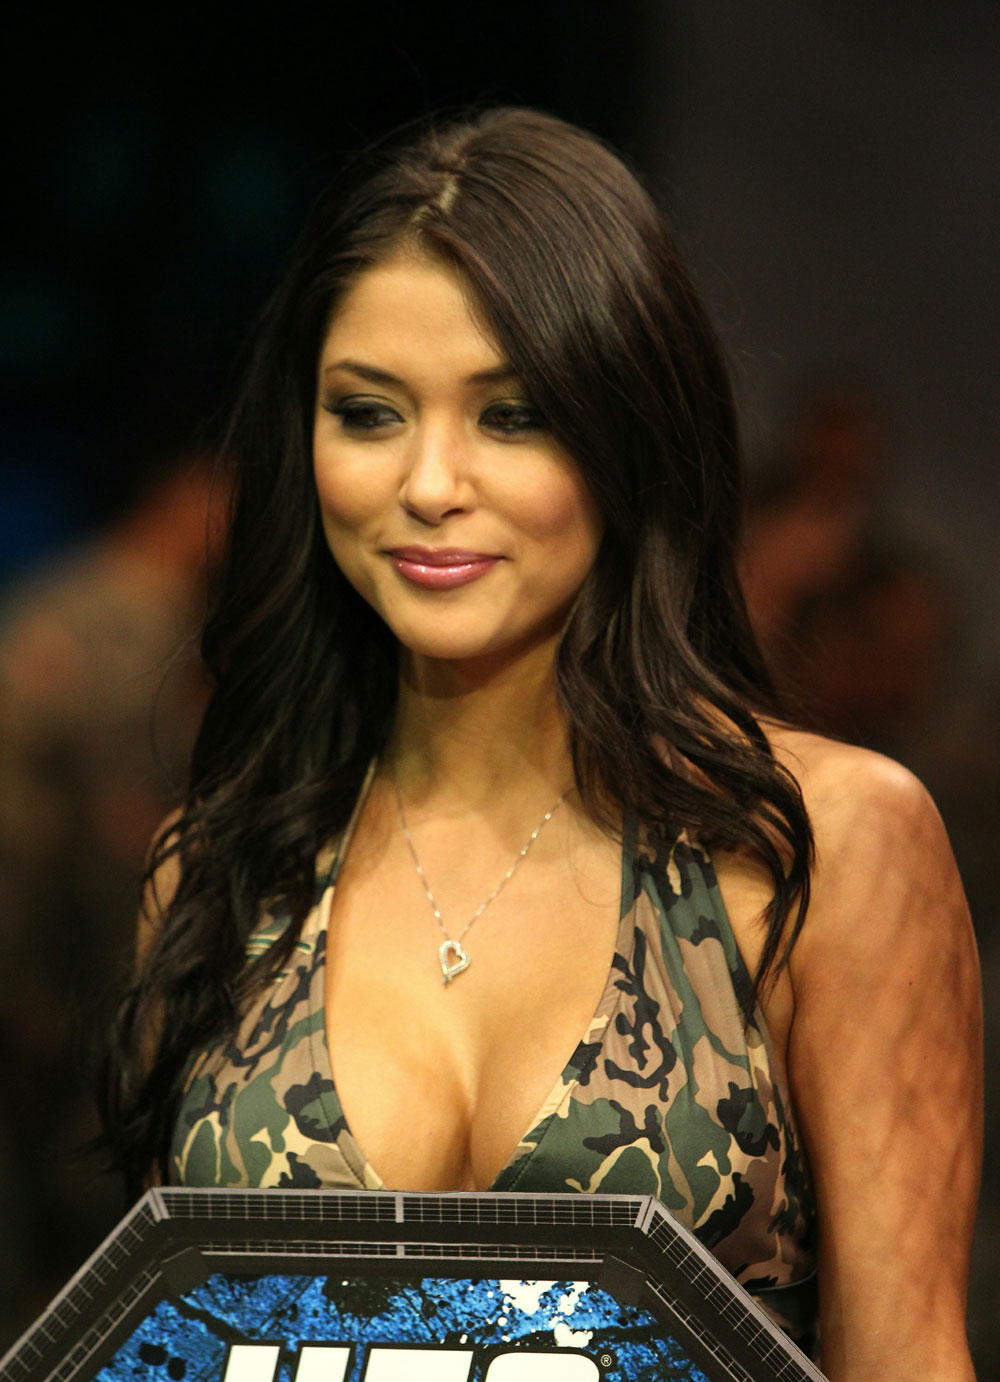 Octagon Girl, Arianny Celeste